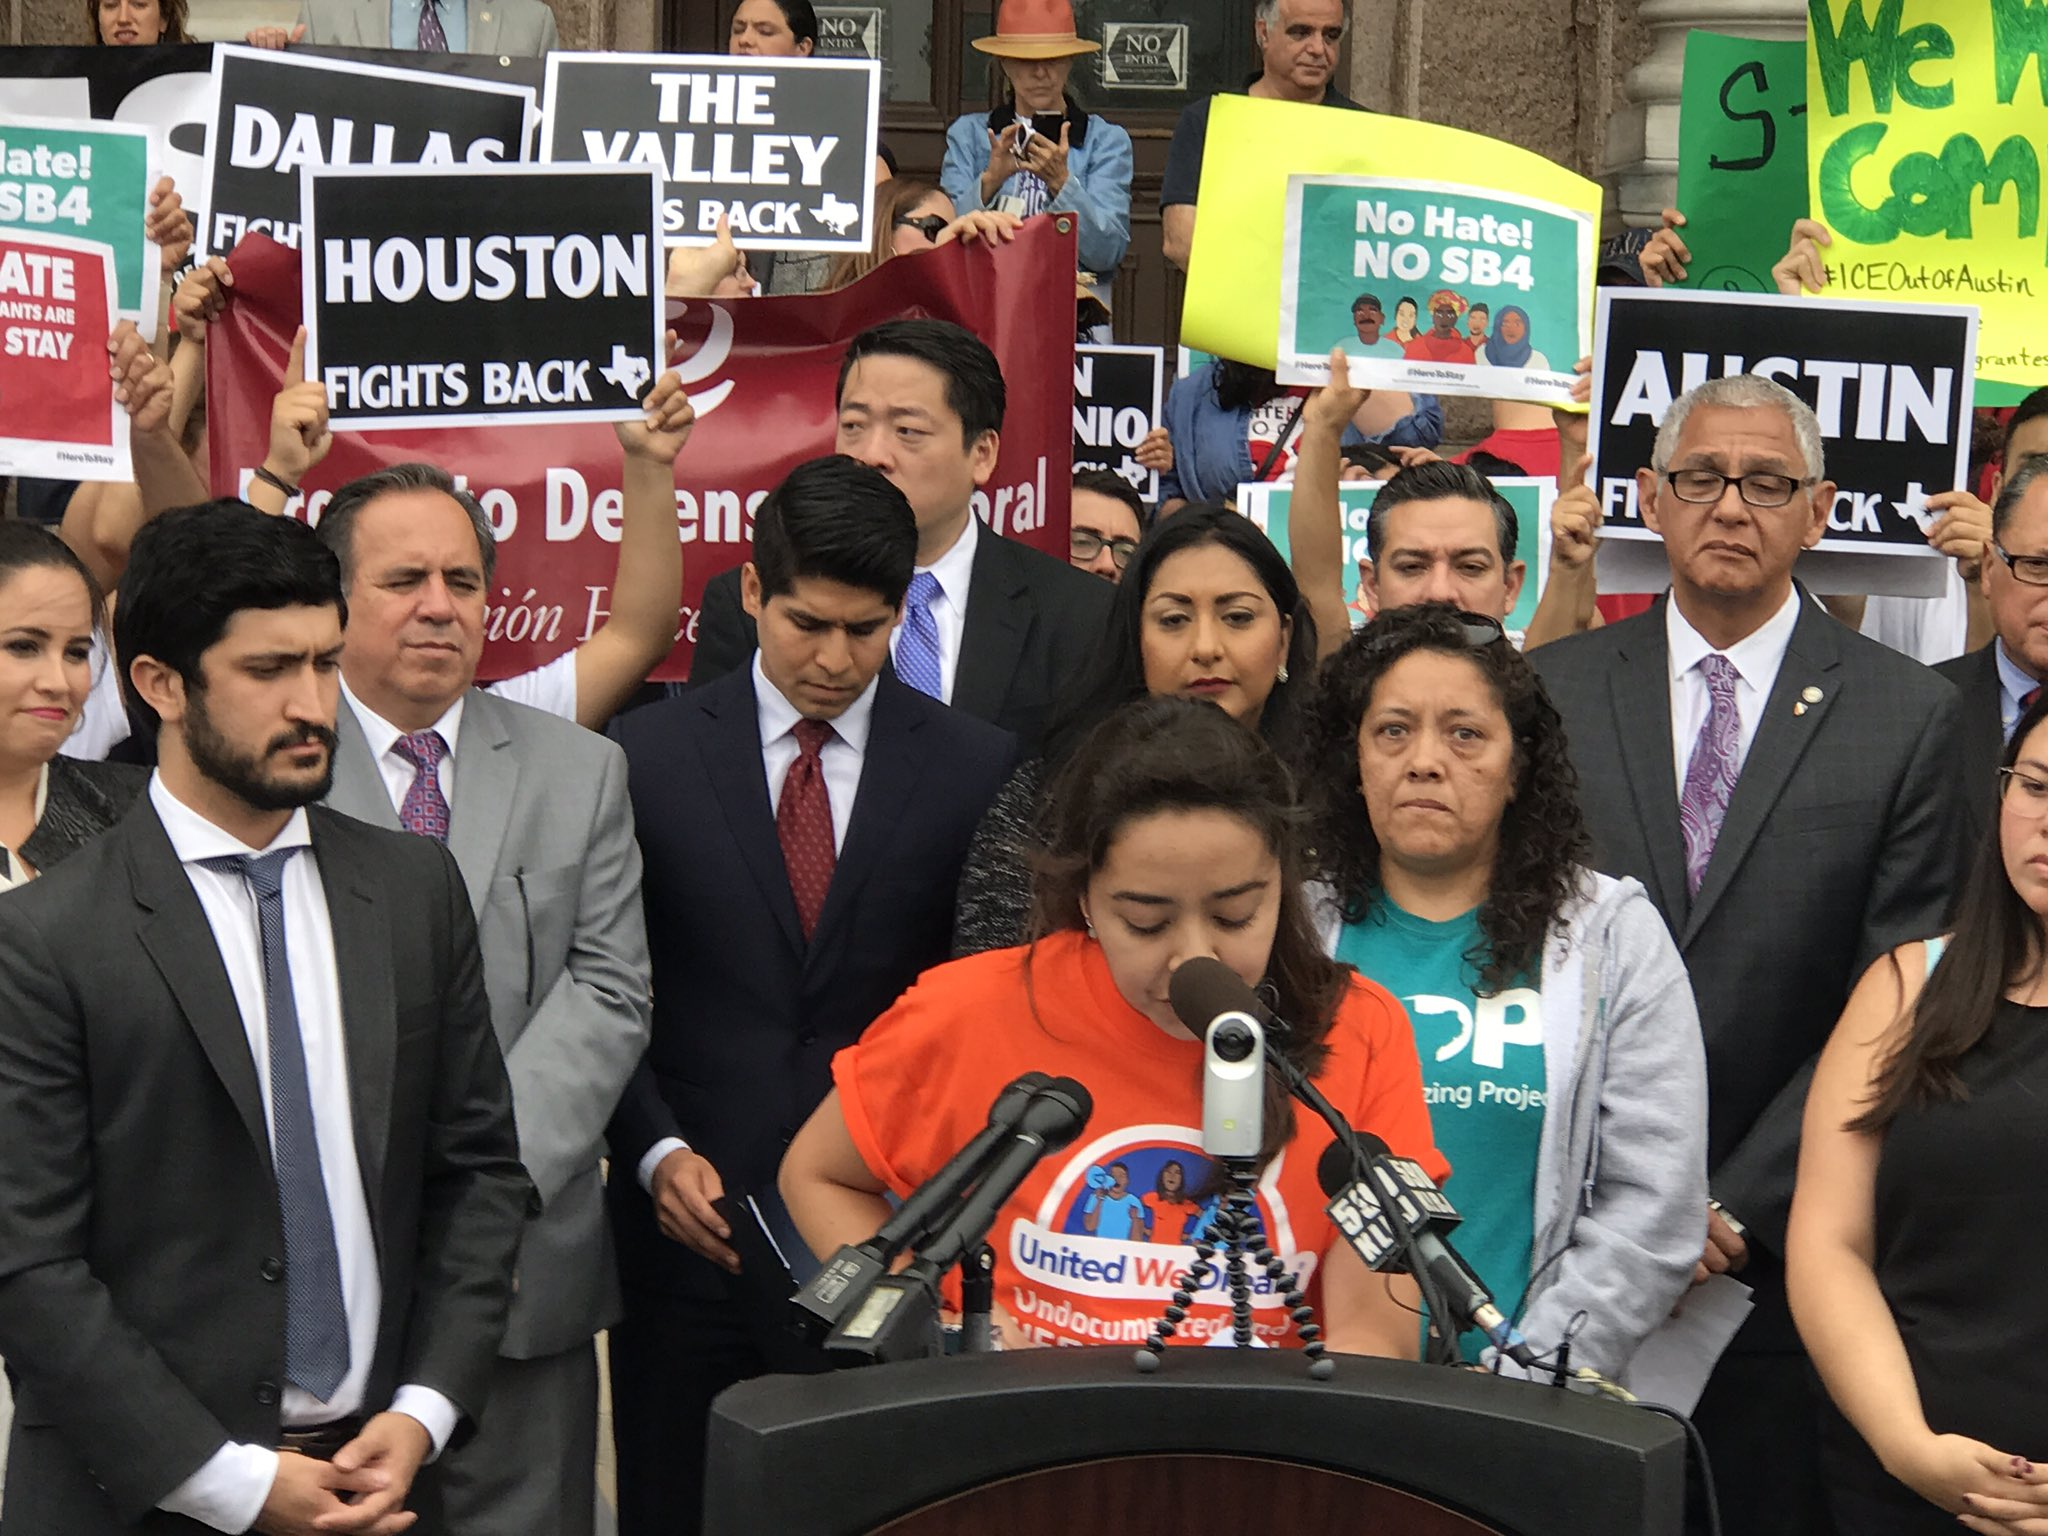 This Summer of Resistance, we call on elected officials across the state to step up too. #SB4isHate #HereToStay https://t.co/SzILPYpFQy